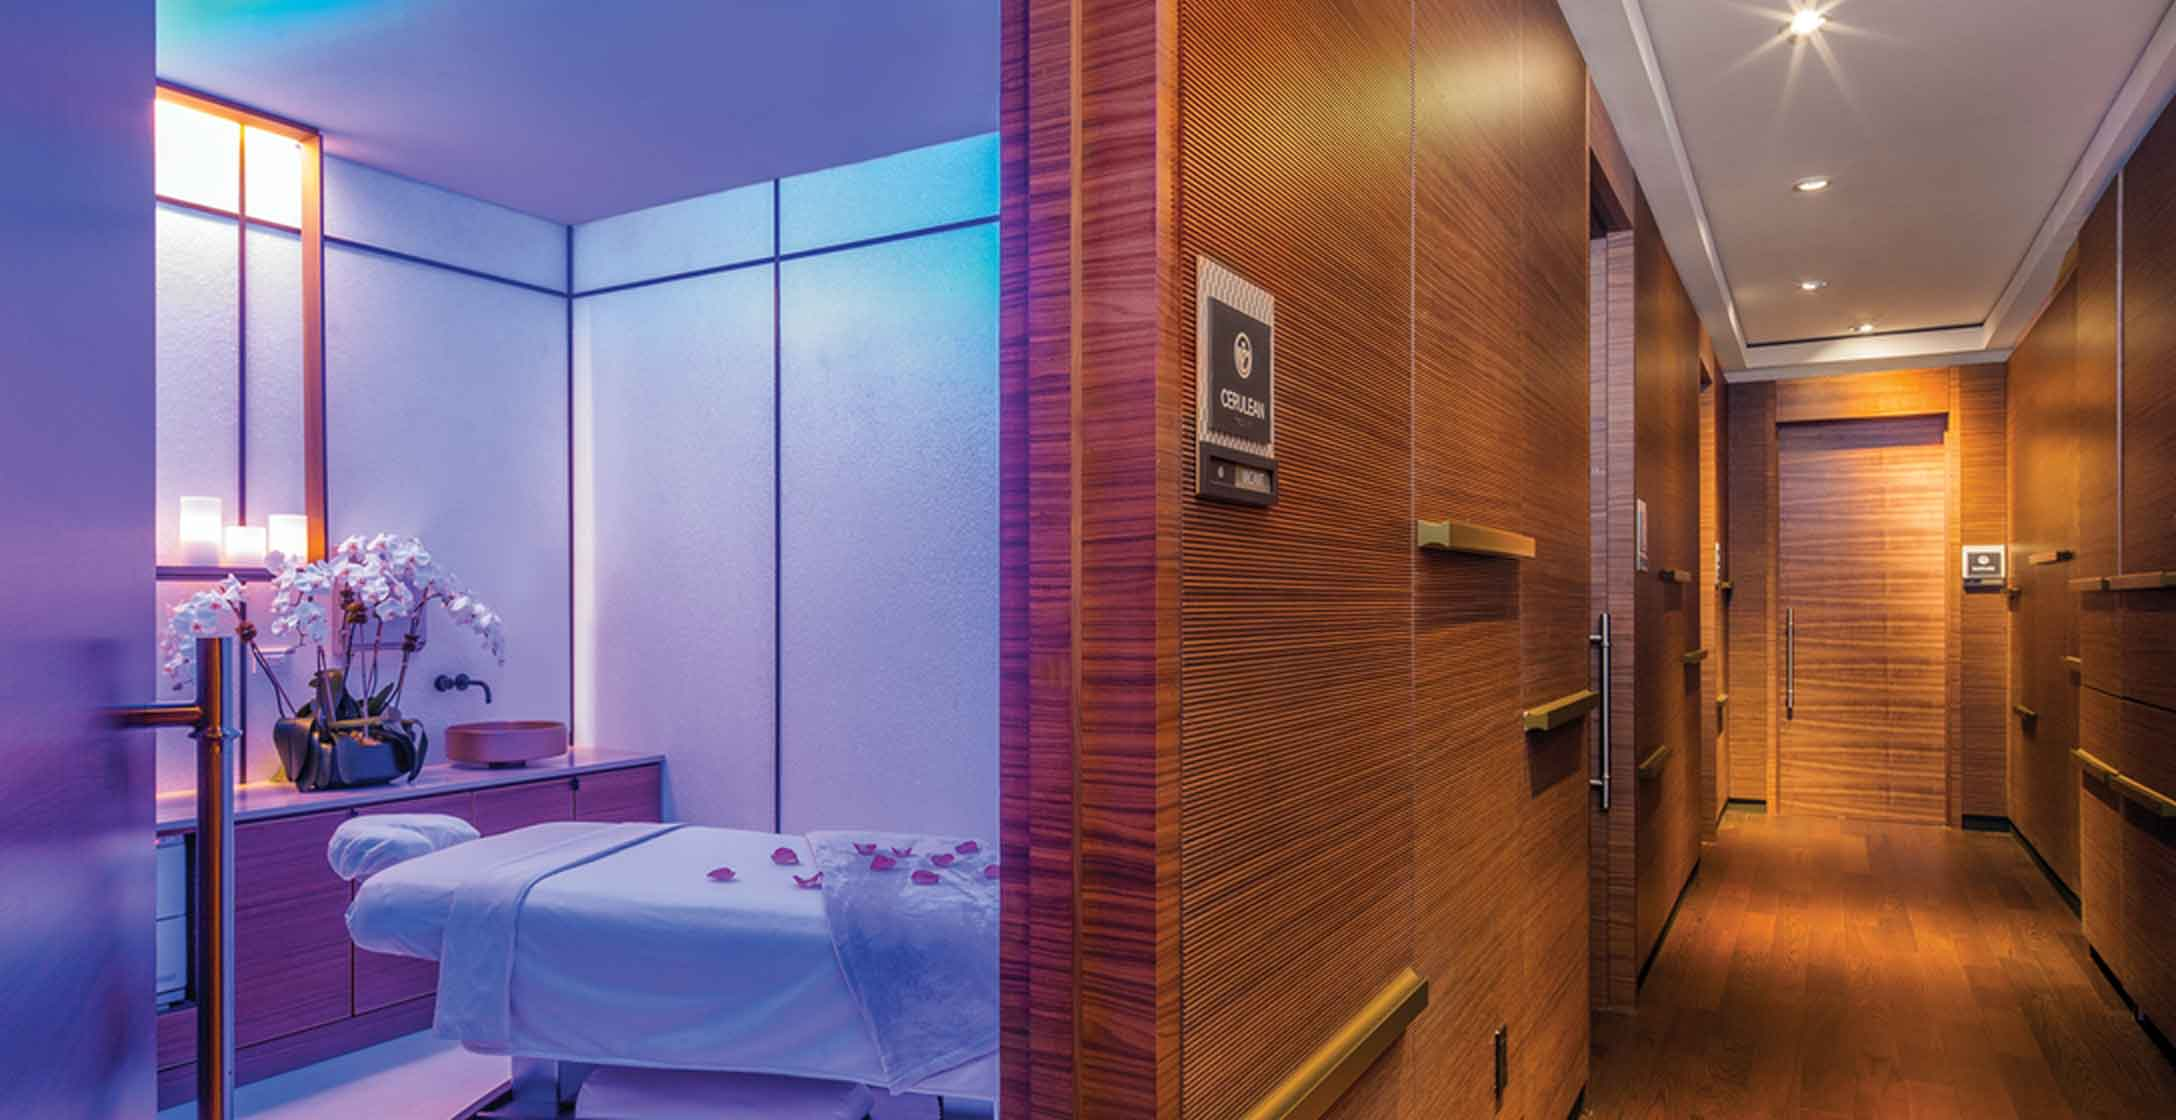 A softly lit massage room off a wood-paneled hallway